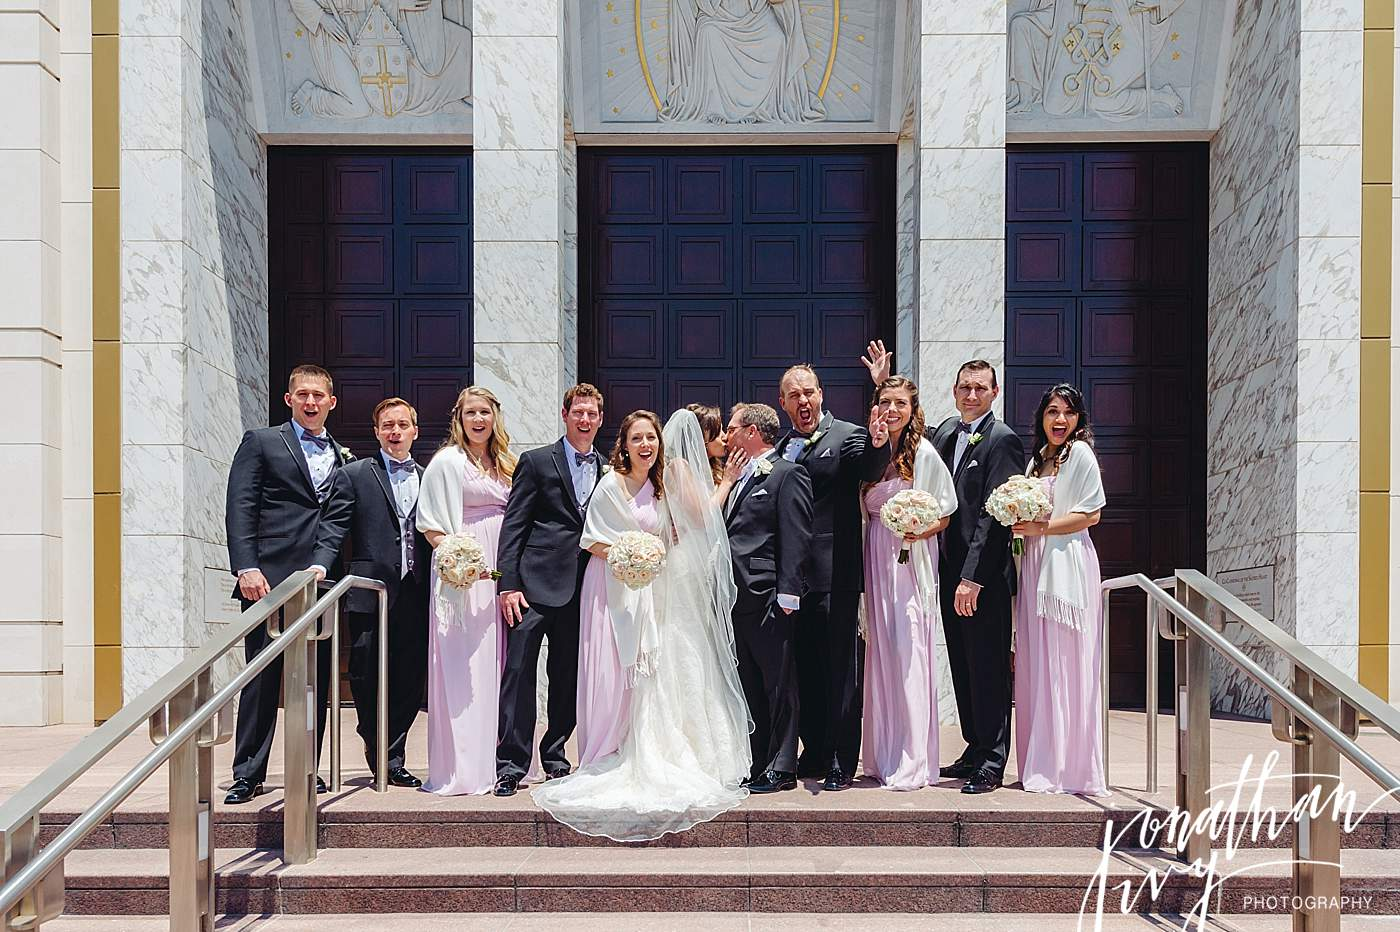 Wedding at Co-Cathedral of the Sacred Heart